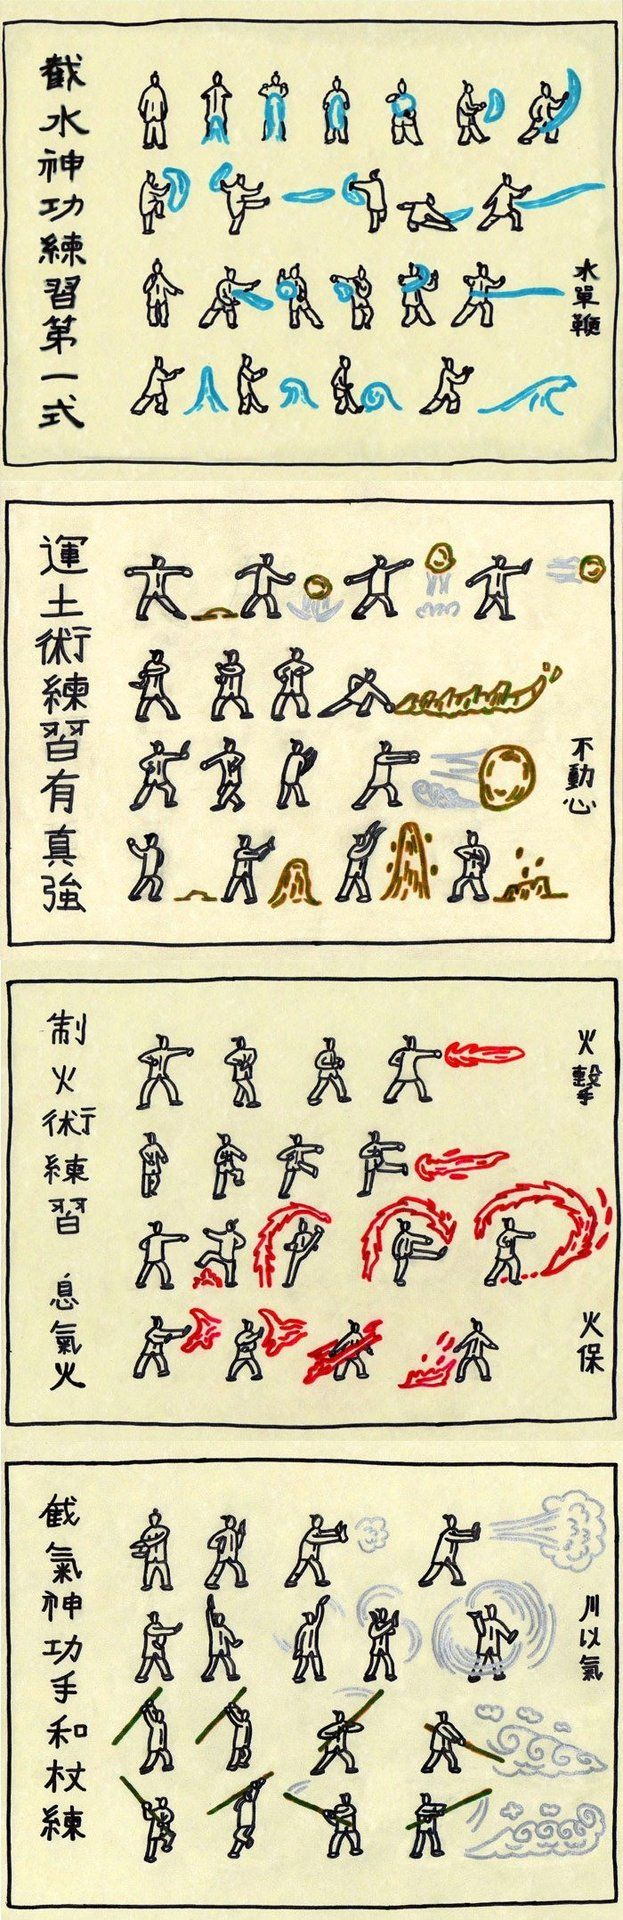 Element Bending Instructions. WHAT TYPE OF BENDER WOULD YOU BE IF YOU HAD THE CHOICE? I would be a water bender :)